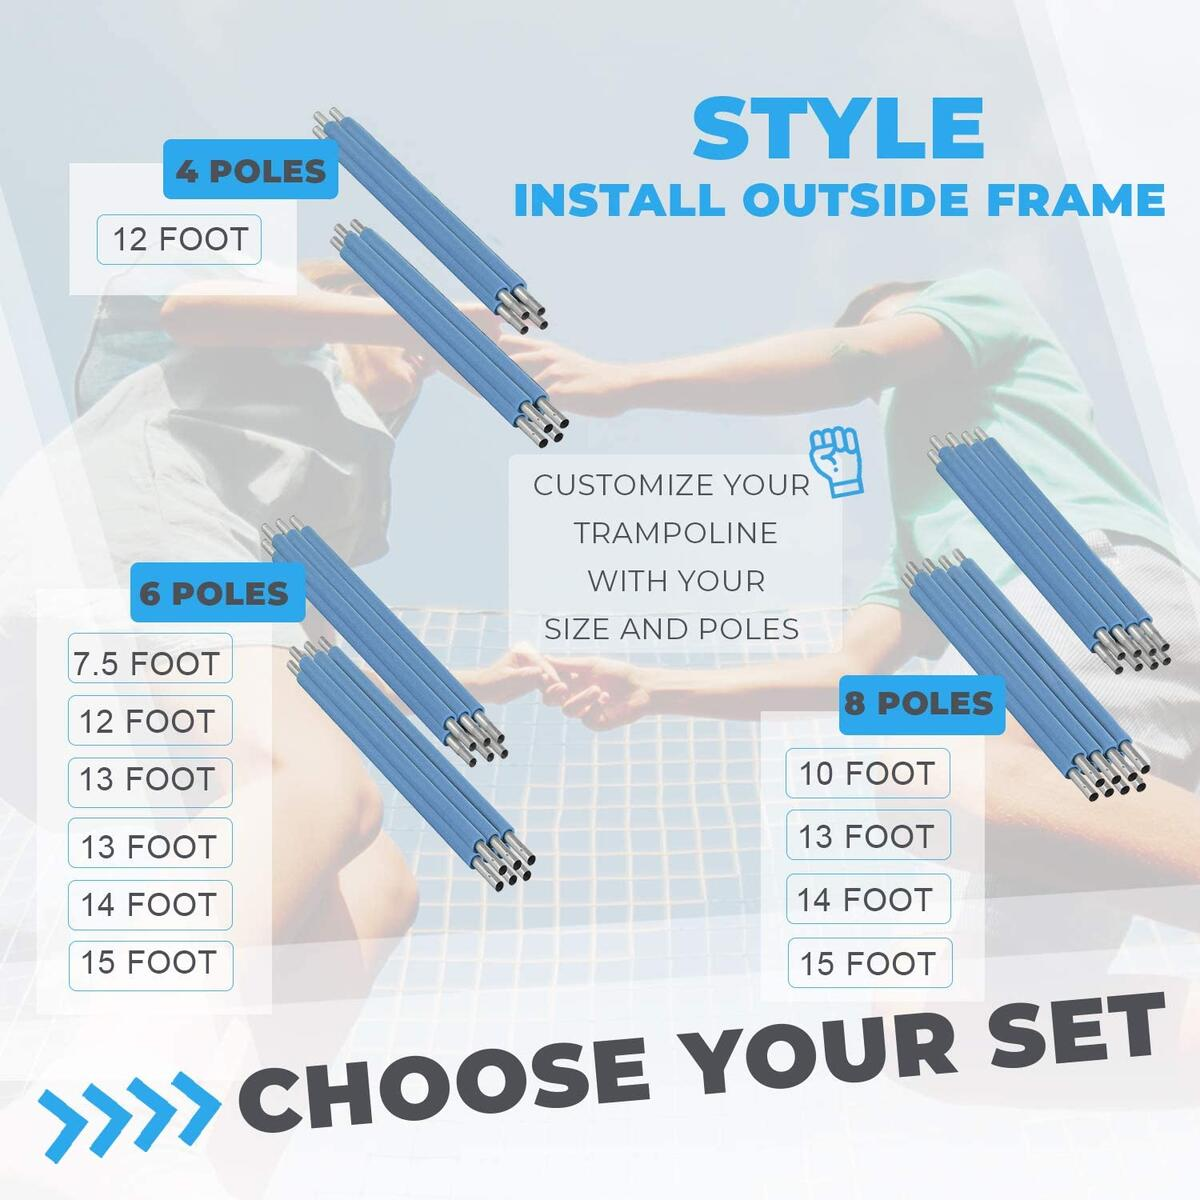 INSTALLS OUTDSIDE FRAME | 15 FOOT, 6 POLES - Replacement net and poles For 15 foot trampoline